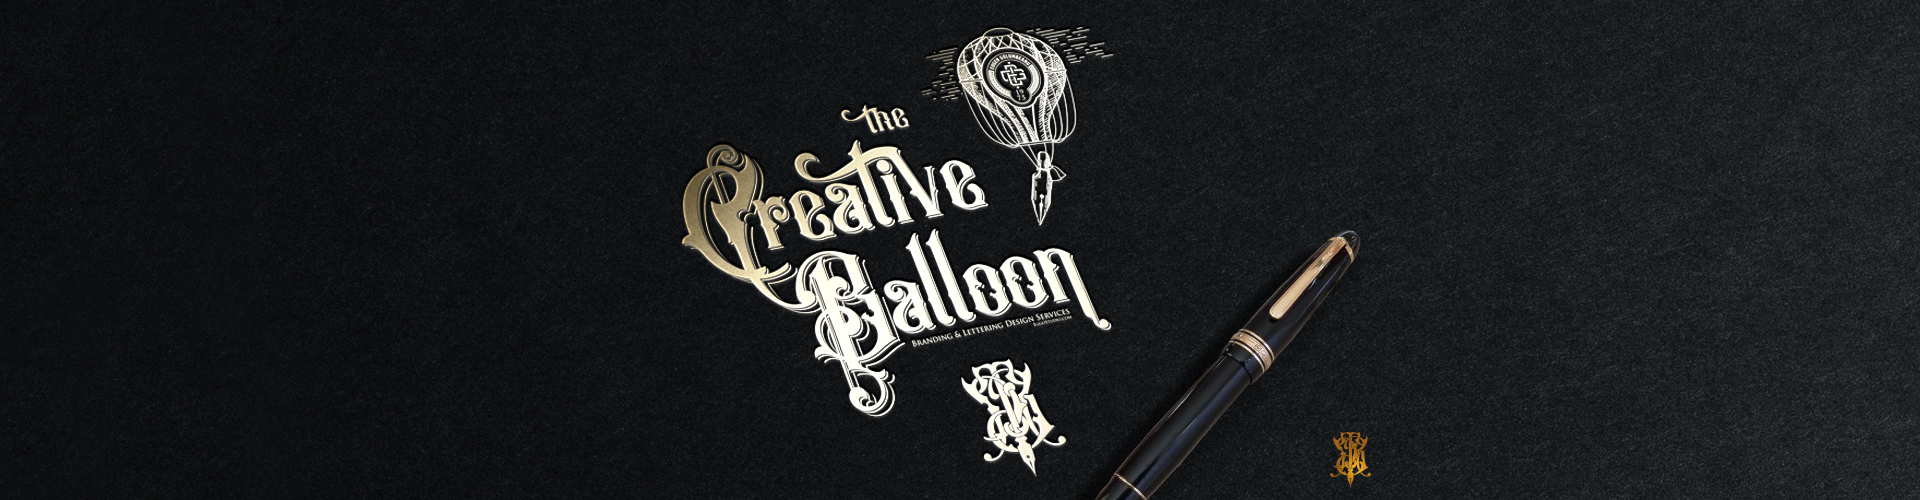 THE-CREATIVE-BALLOON-LOGO-GOLD-HEADERS